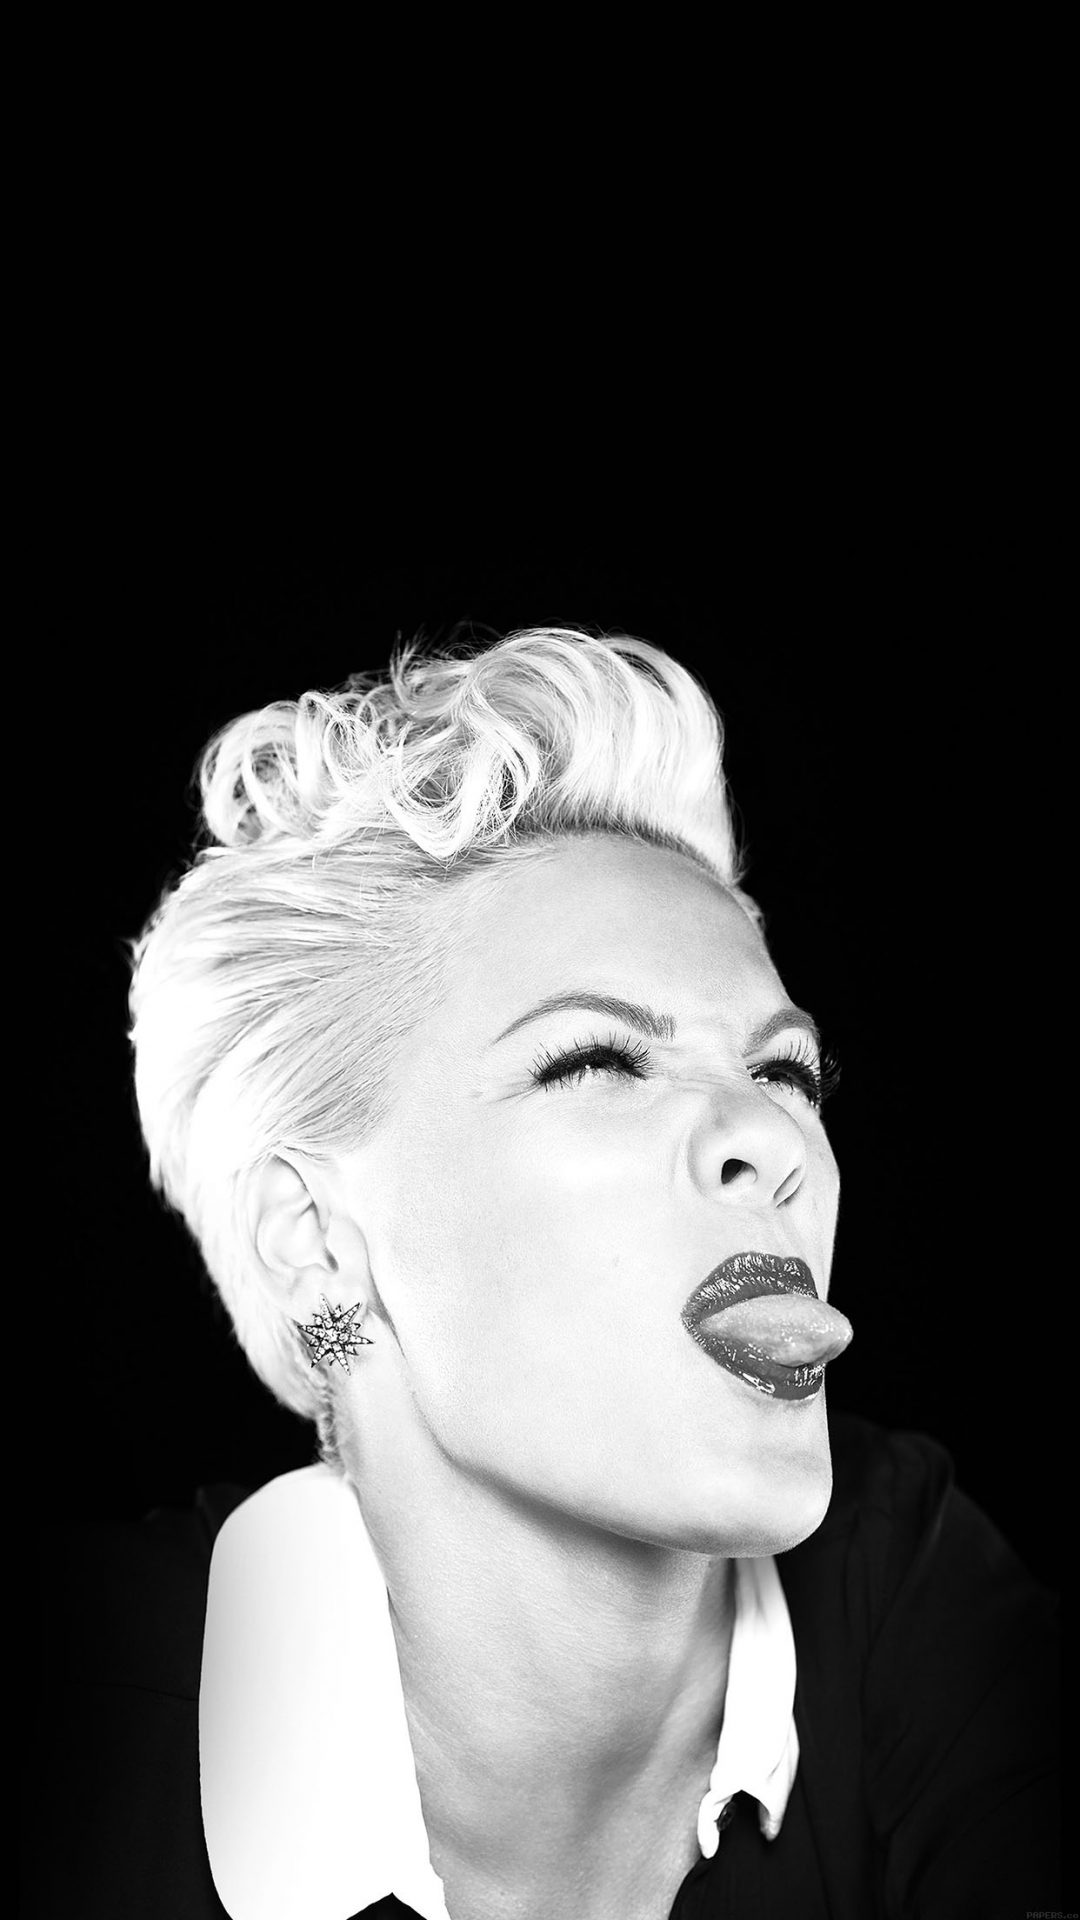 Pink Funny Music Girl Face